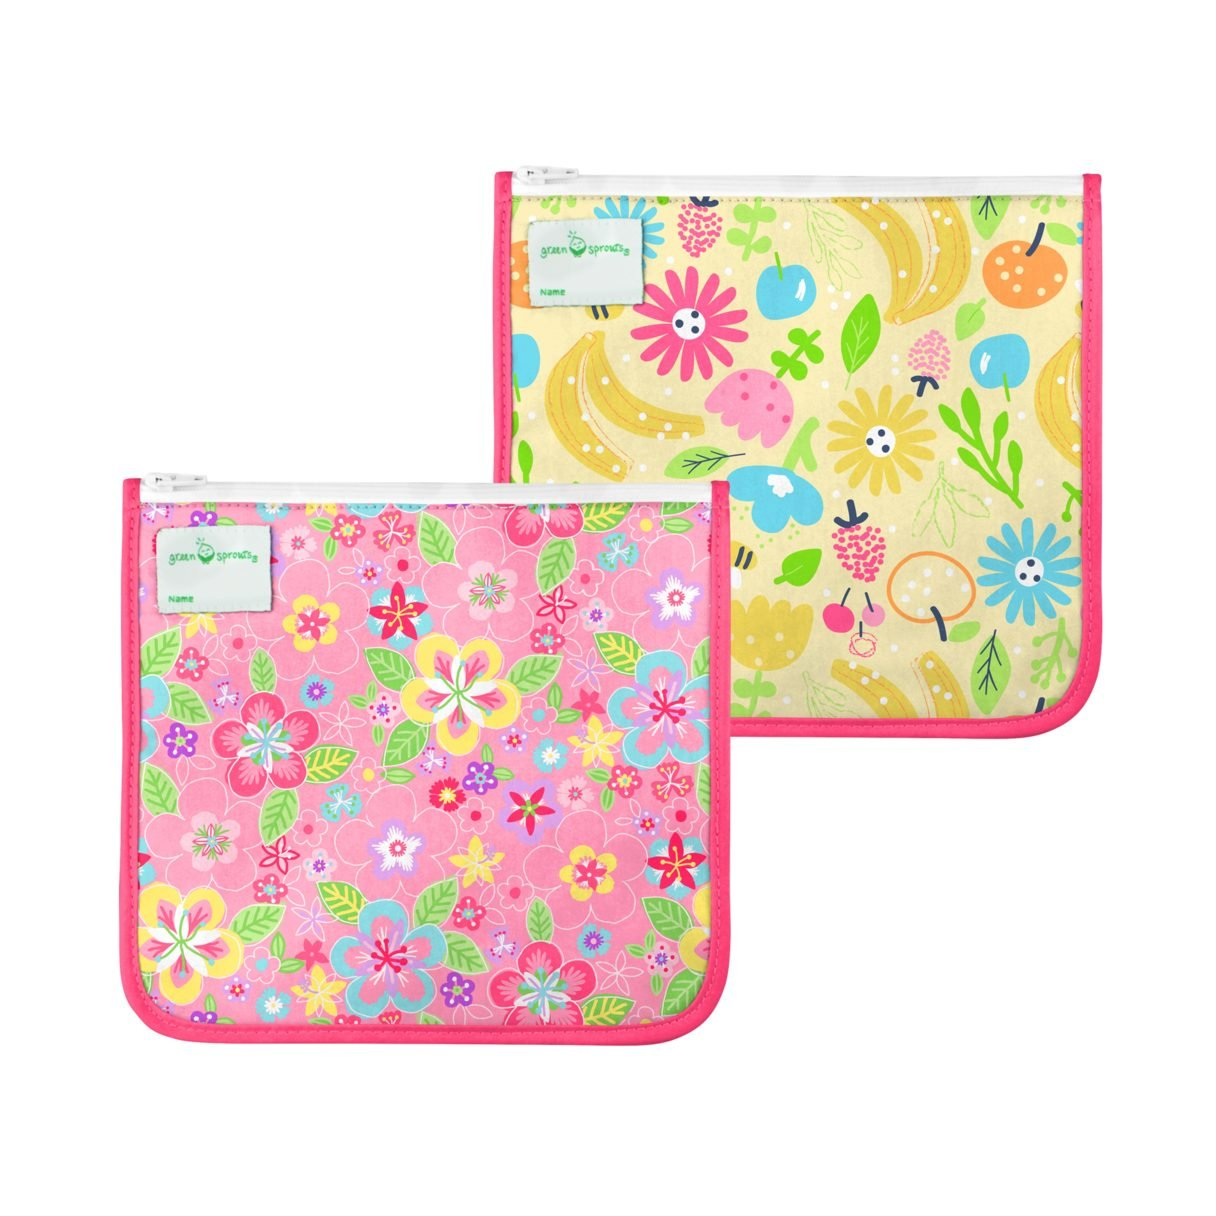 Green Sprouts Reusable Insulated Sandwich Bags